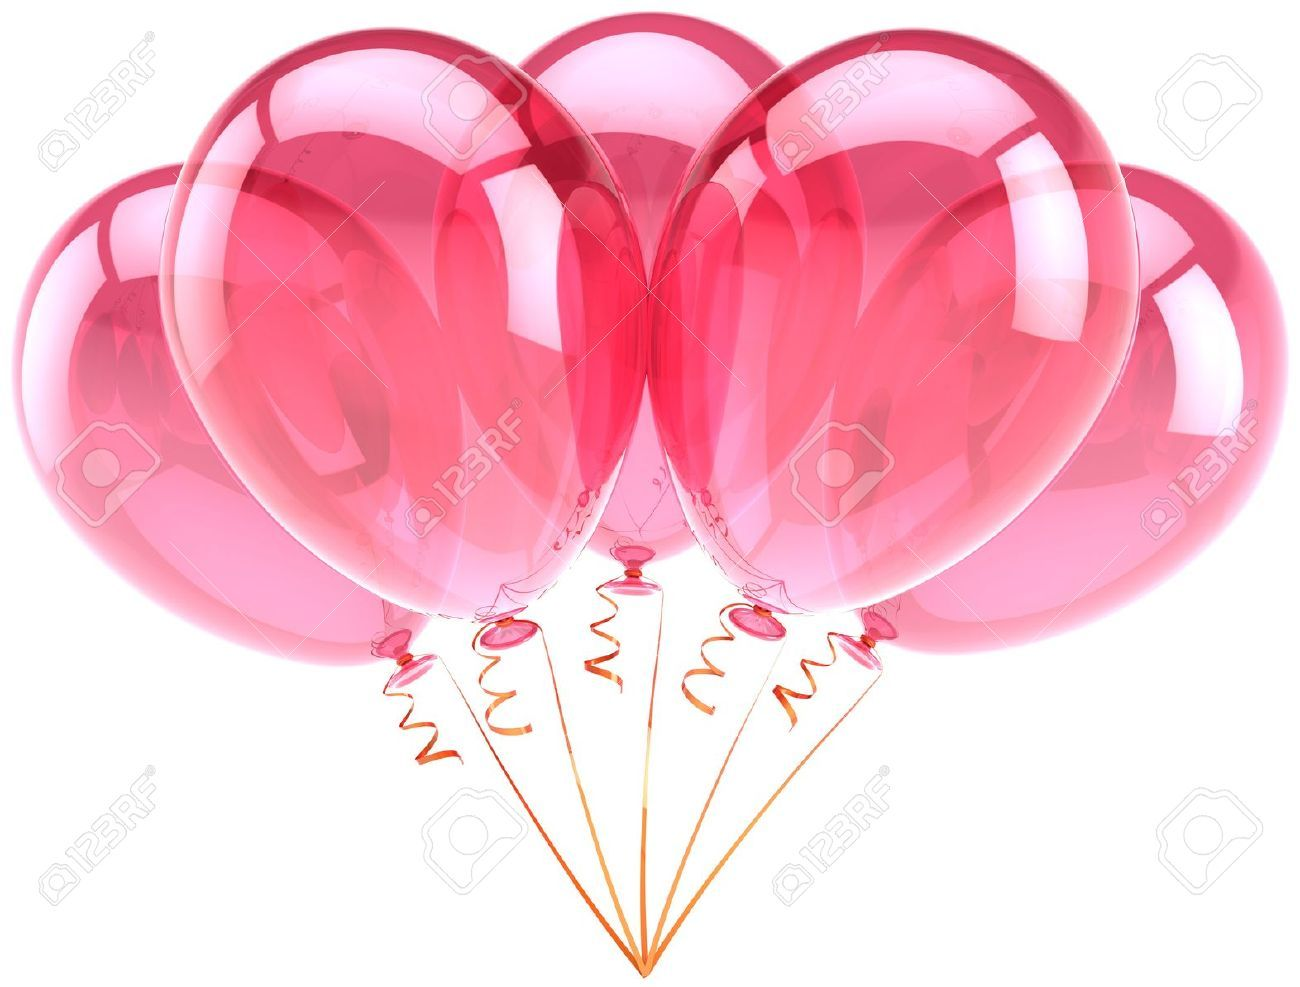 pink balloons images stock pictures royalty free pink balloons